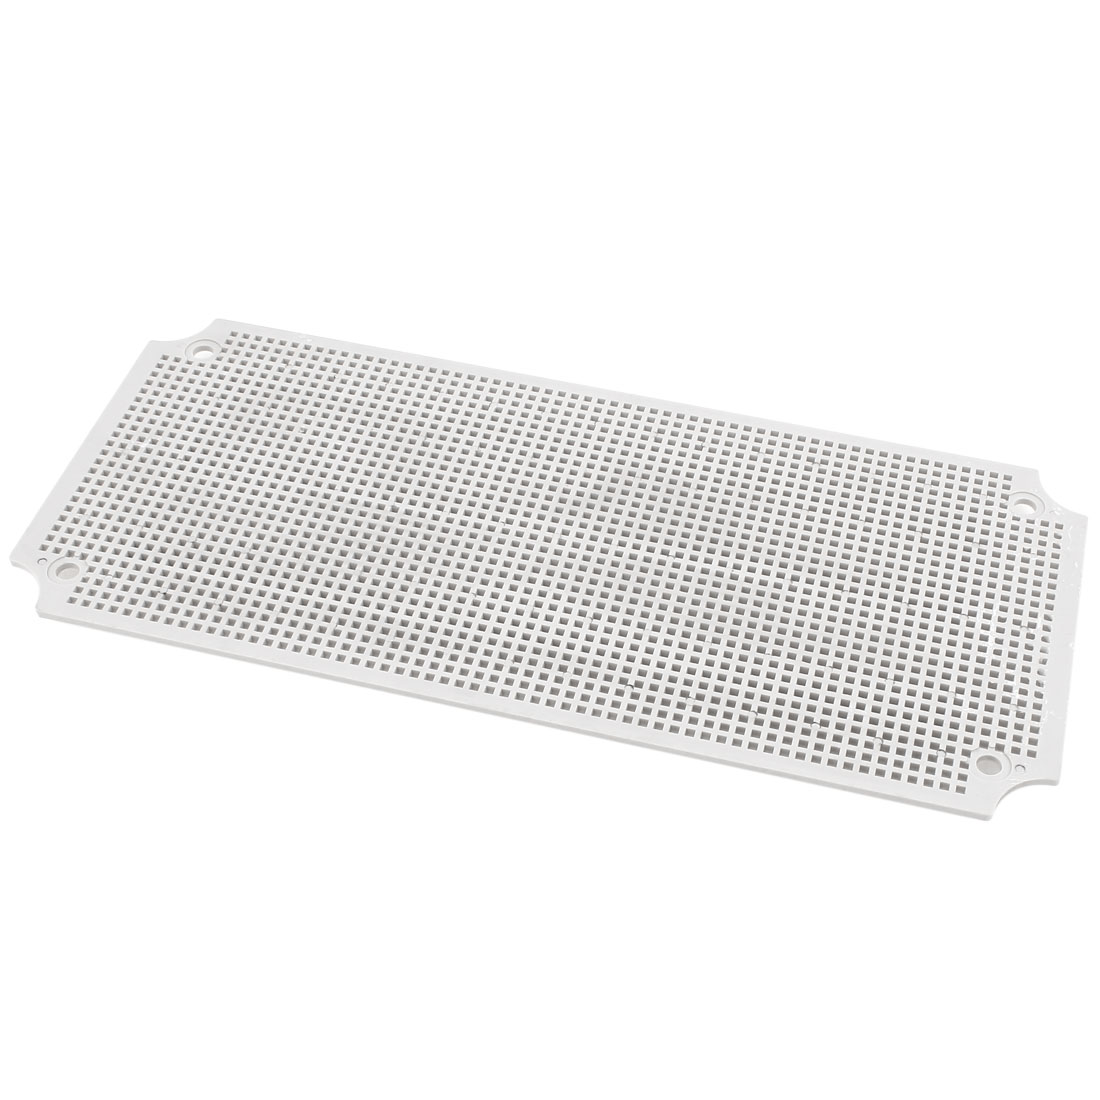 Gray Plastic Mesh Enclosure Mounting Plate for 380 x 190mm Junction Box